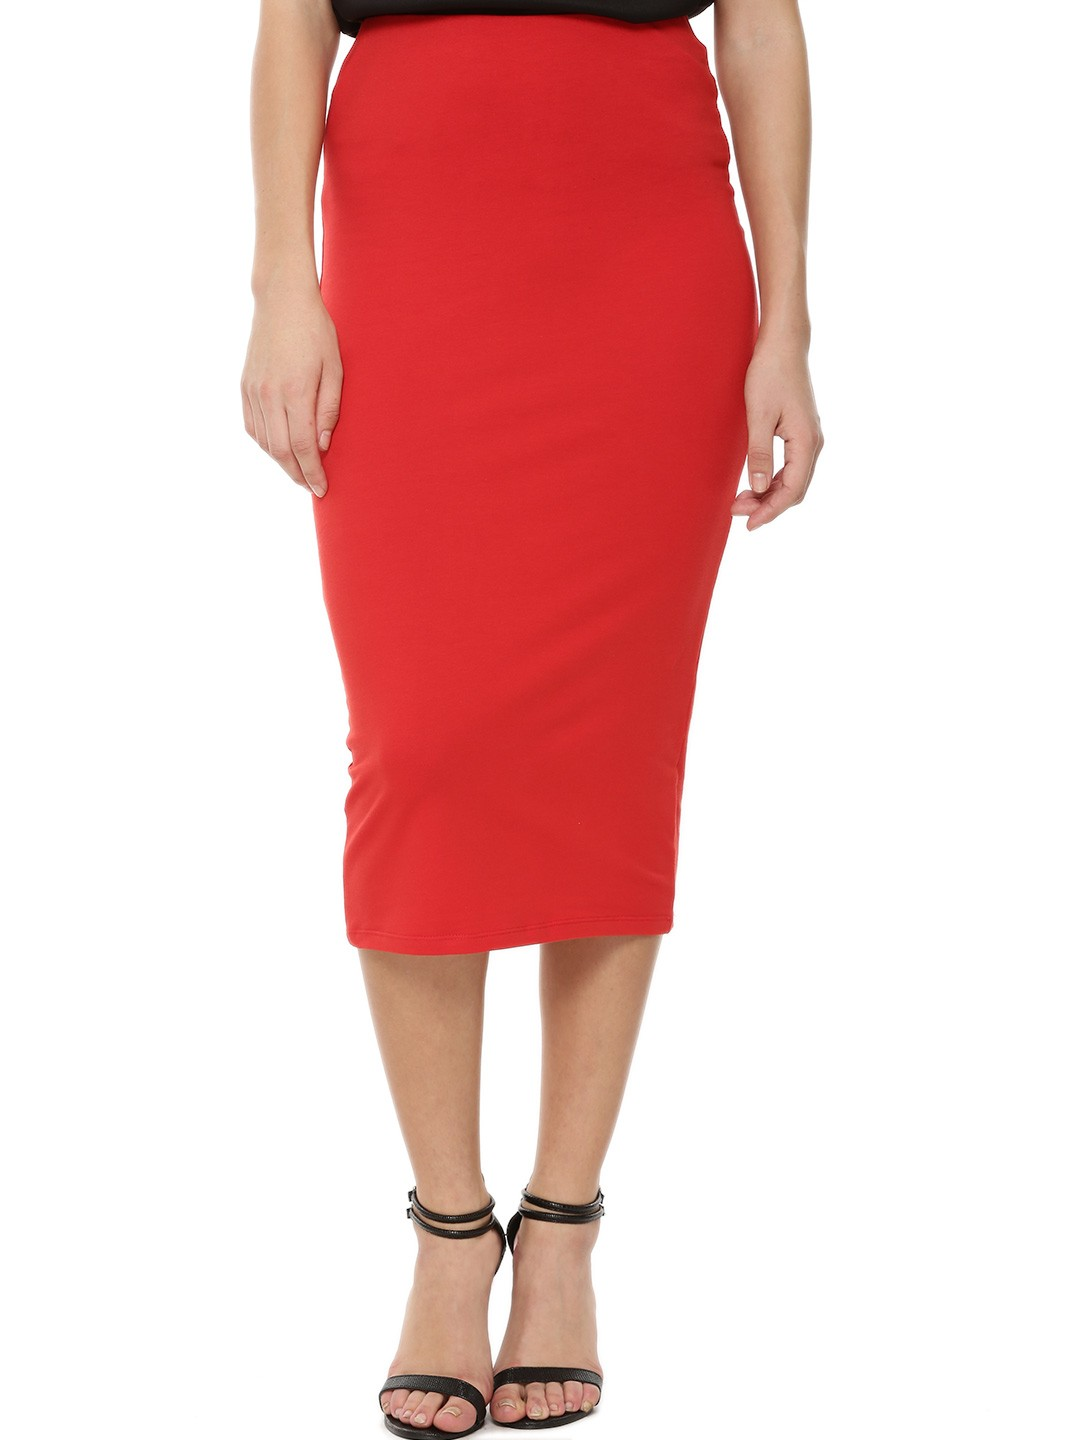 Buy KOOVS Midi Pencil Skirt For Women - Women's Red/Multi Pencil ...